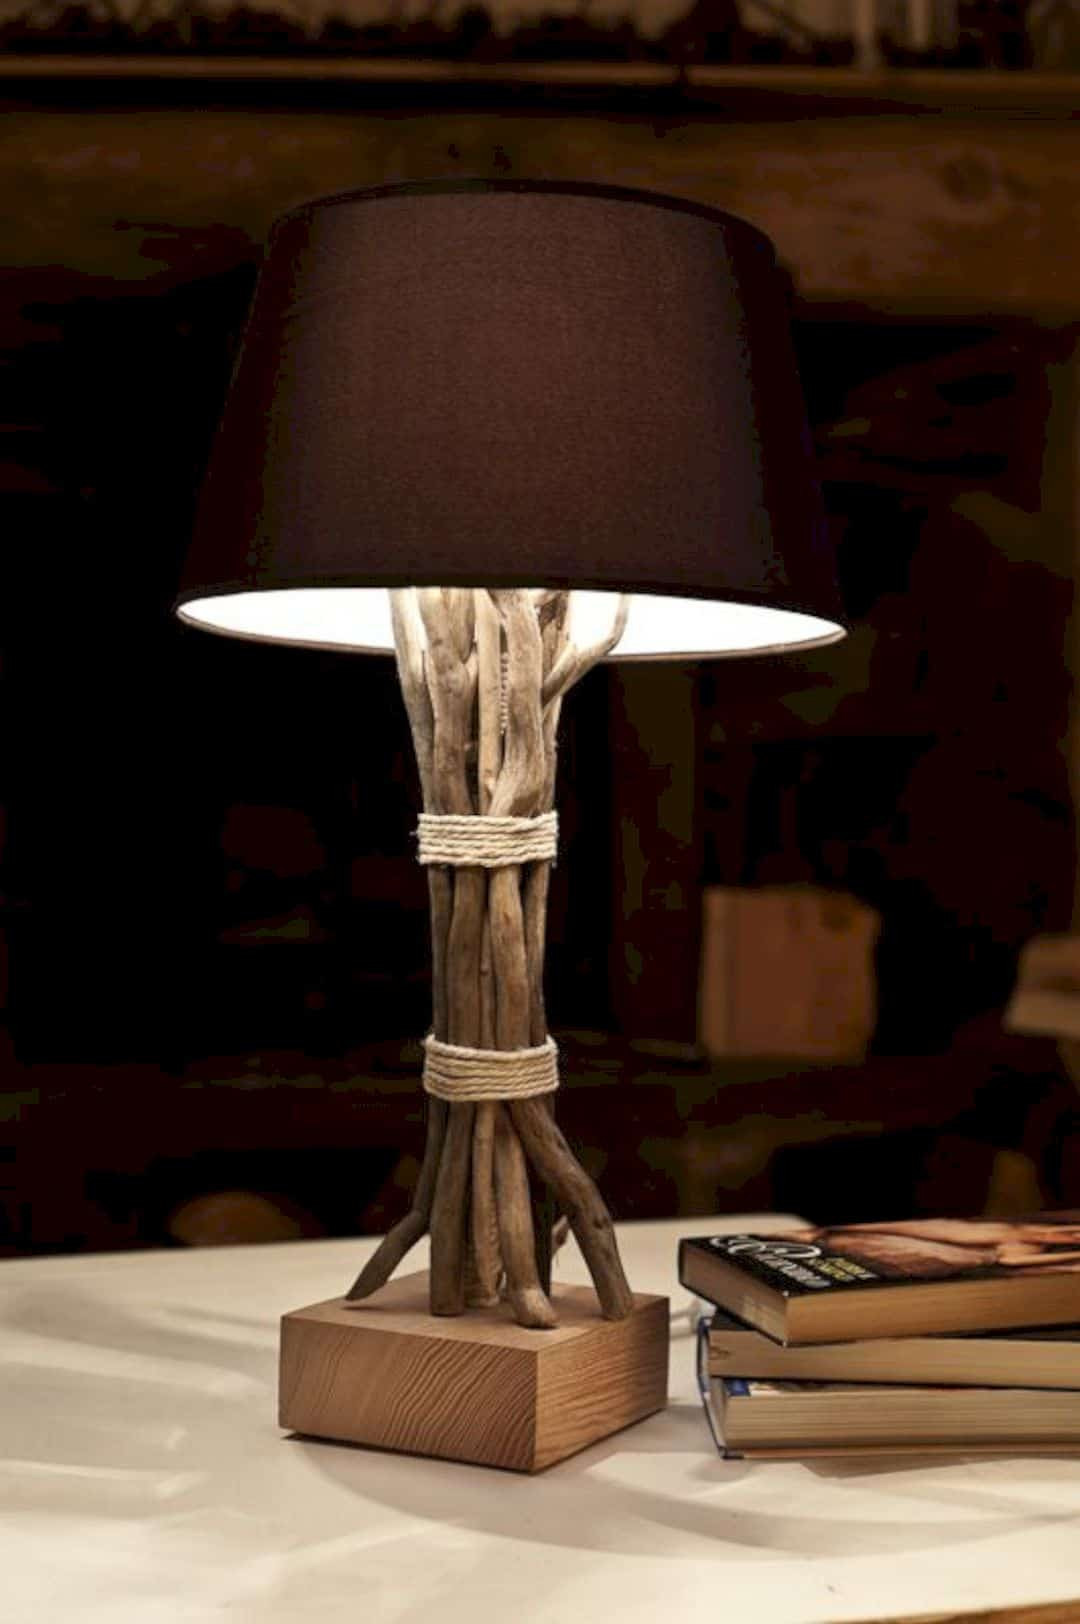 Wooden Lamp Designs 15 Coolest Wooden Lamp Designs